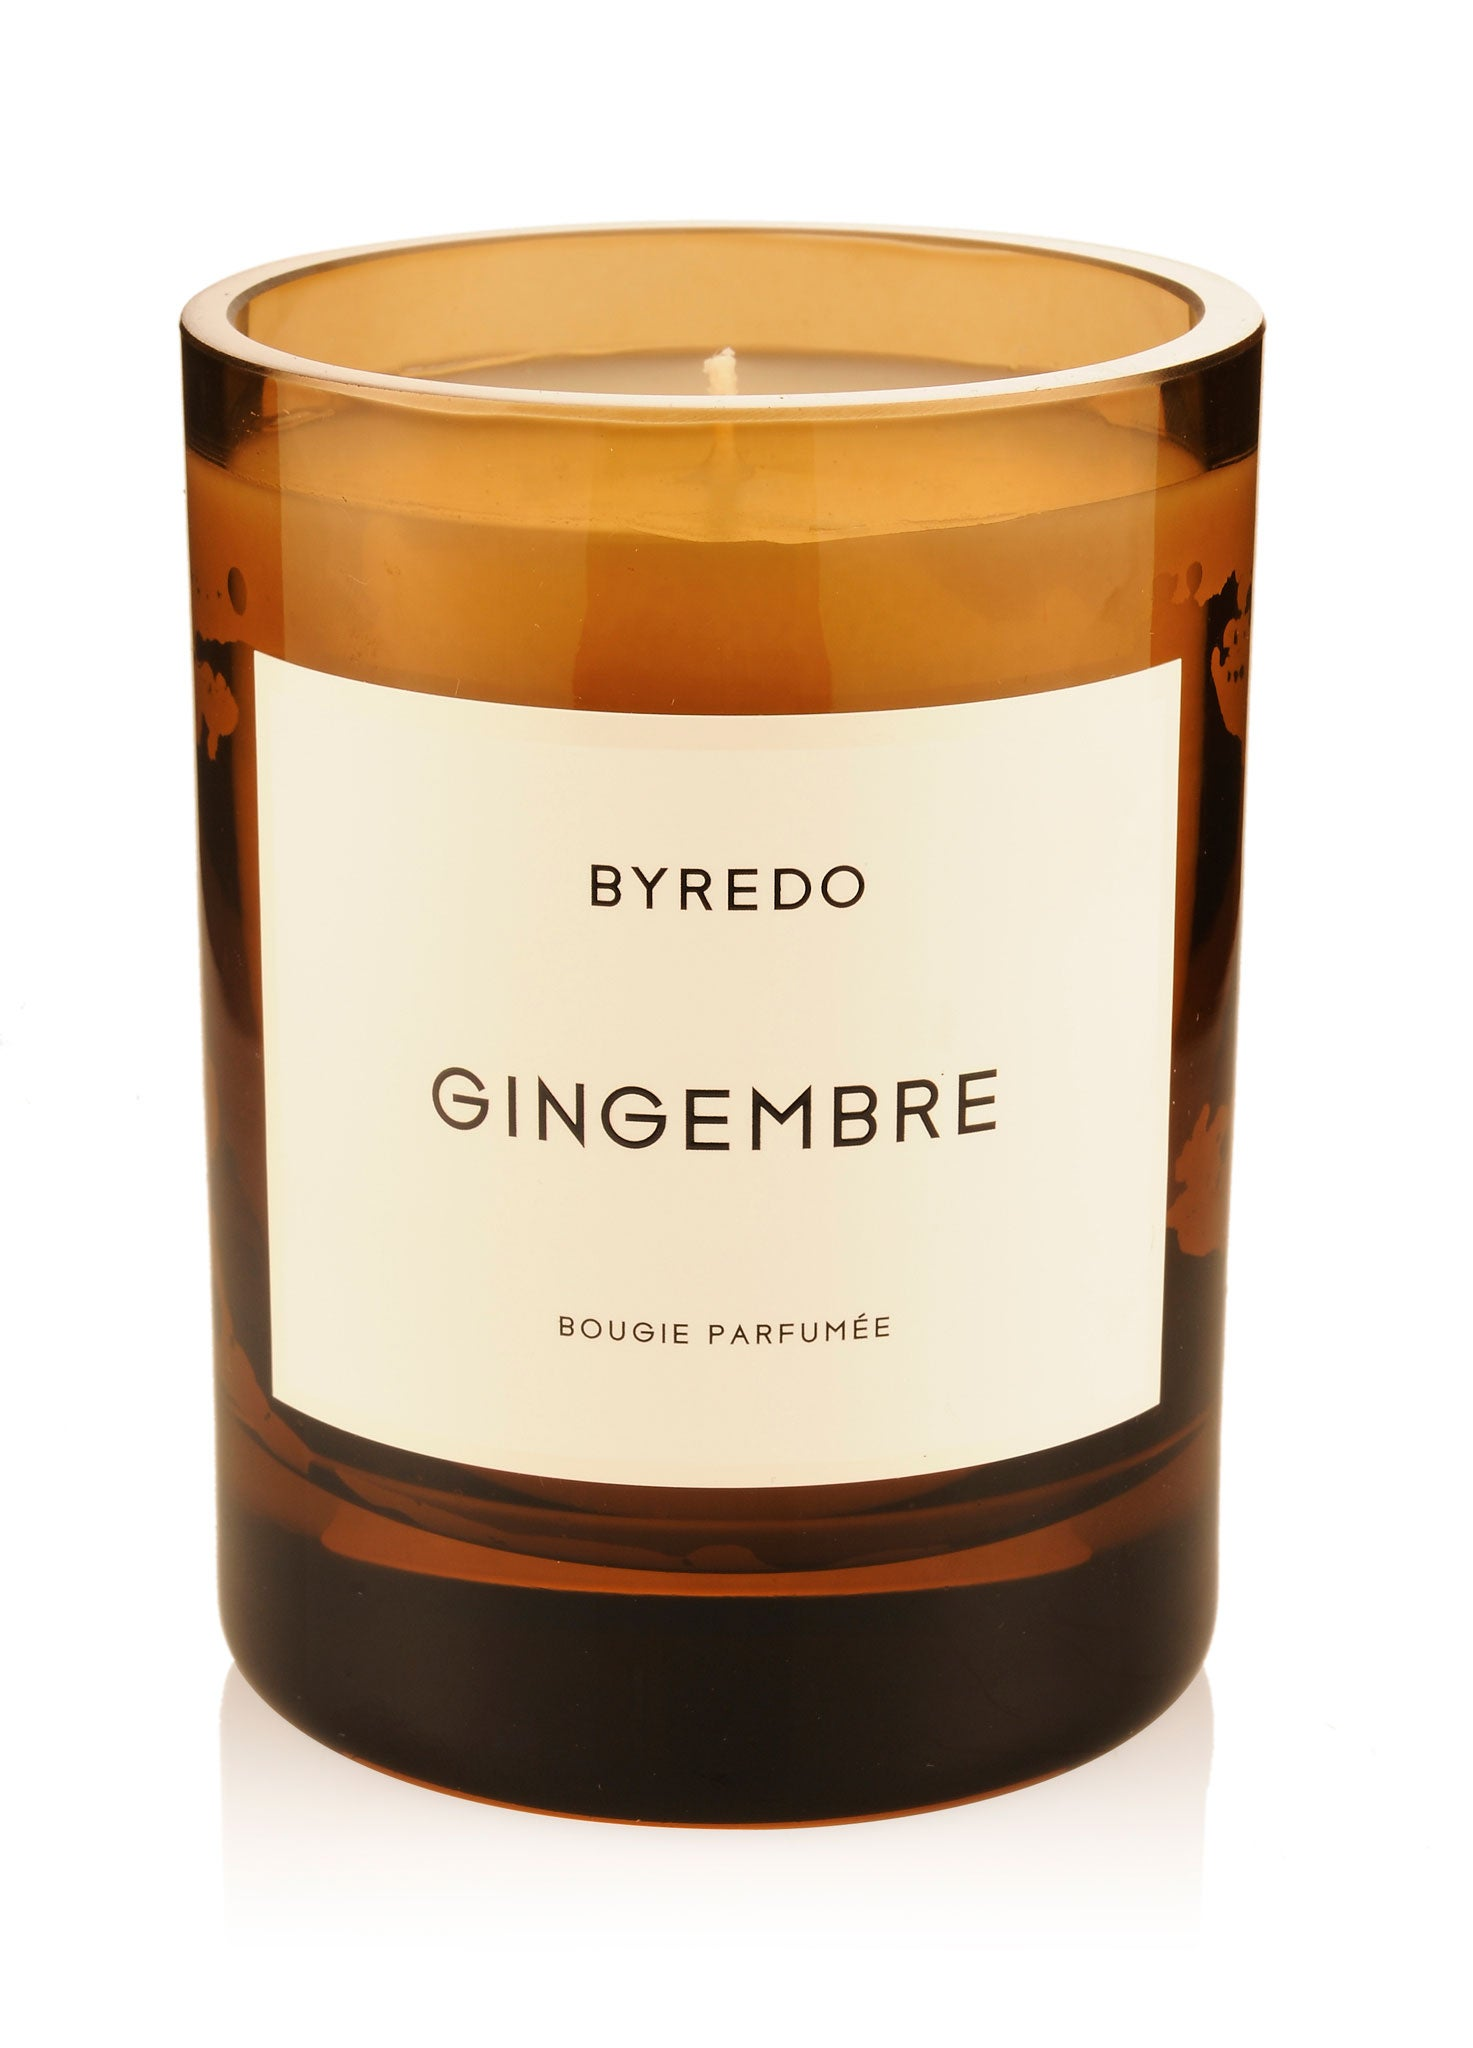 The best scented candles: These fancy aromas will make a